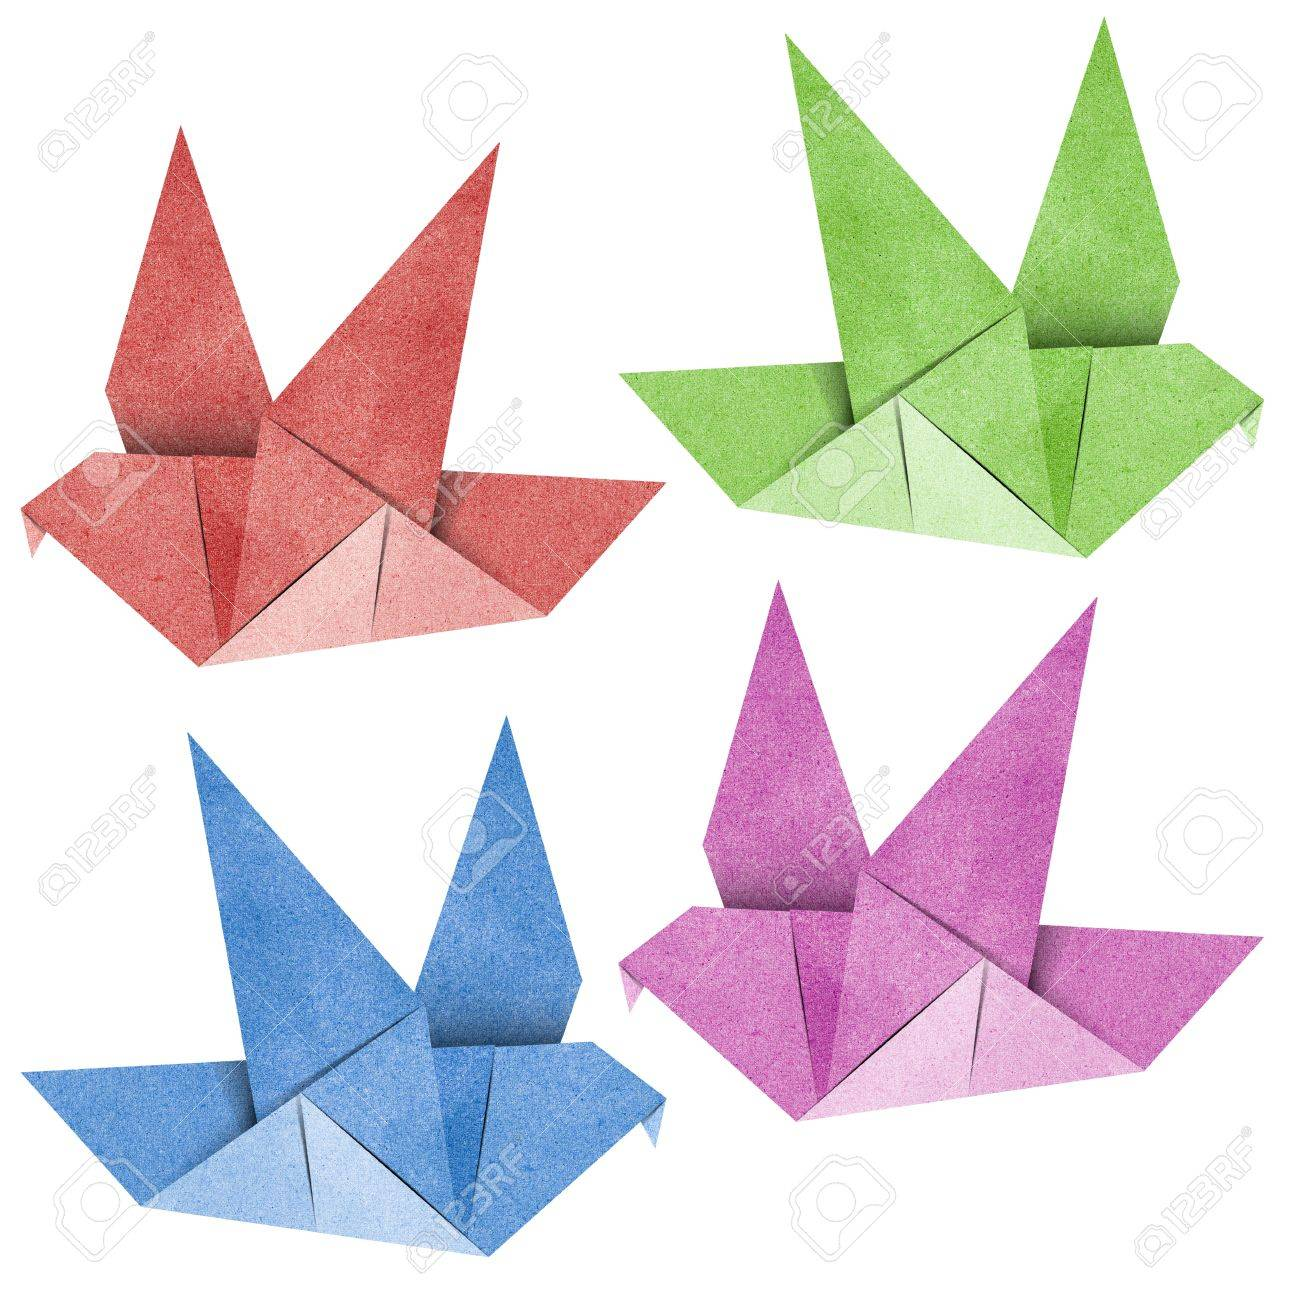 Origami Bird made from Recycle Paper Stock Photo - 14247686